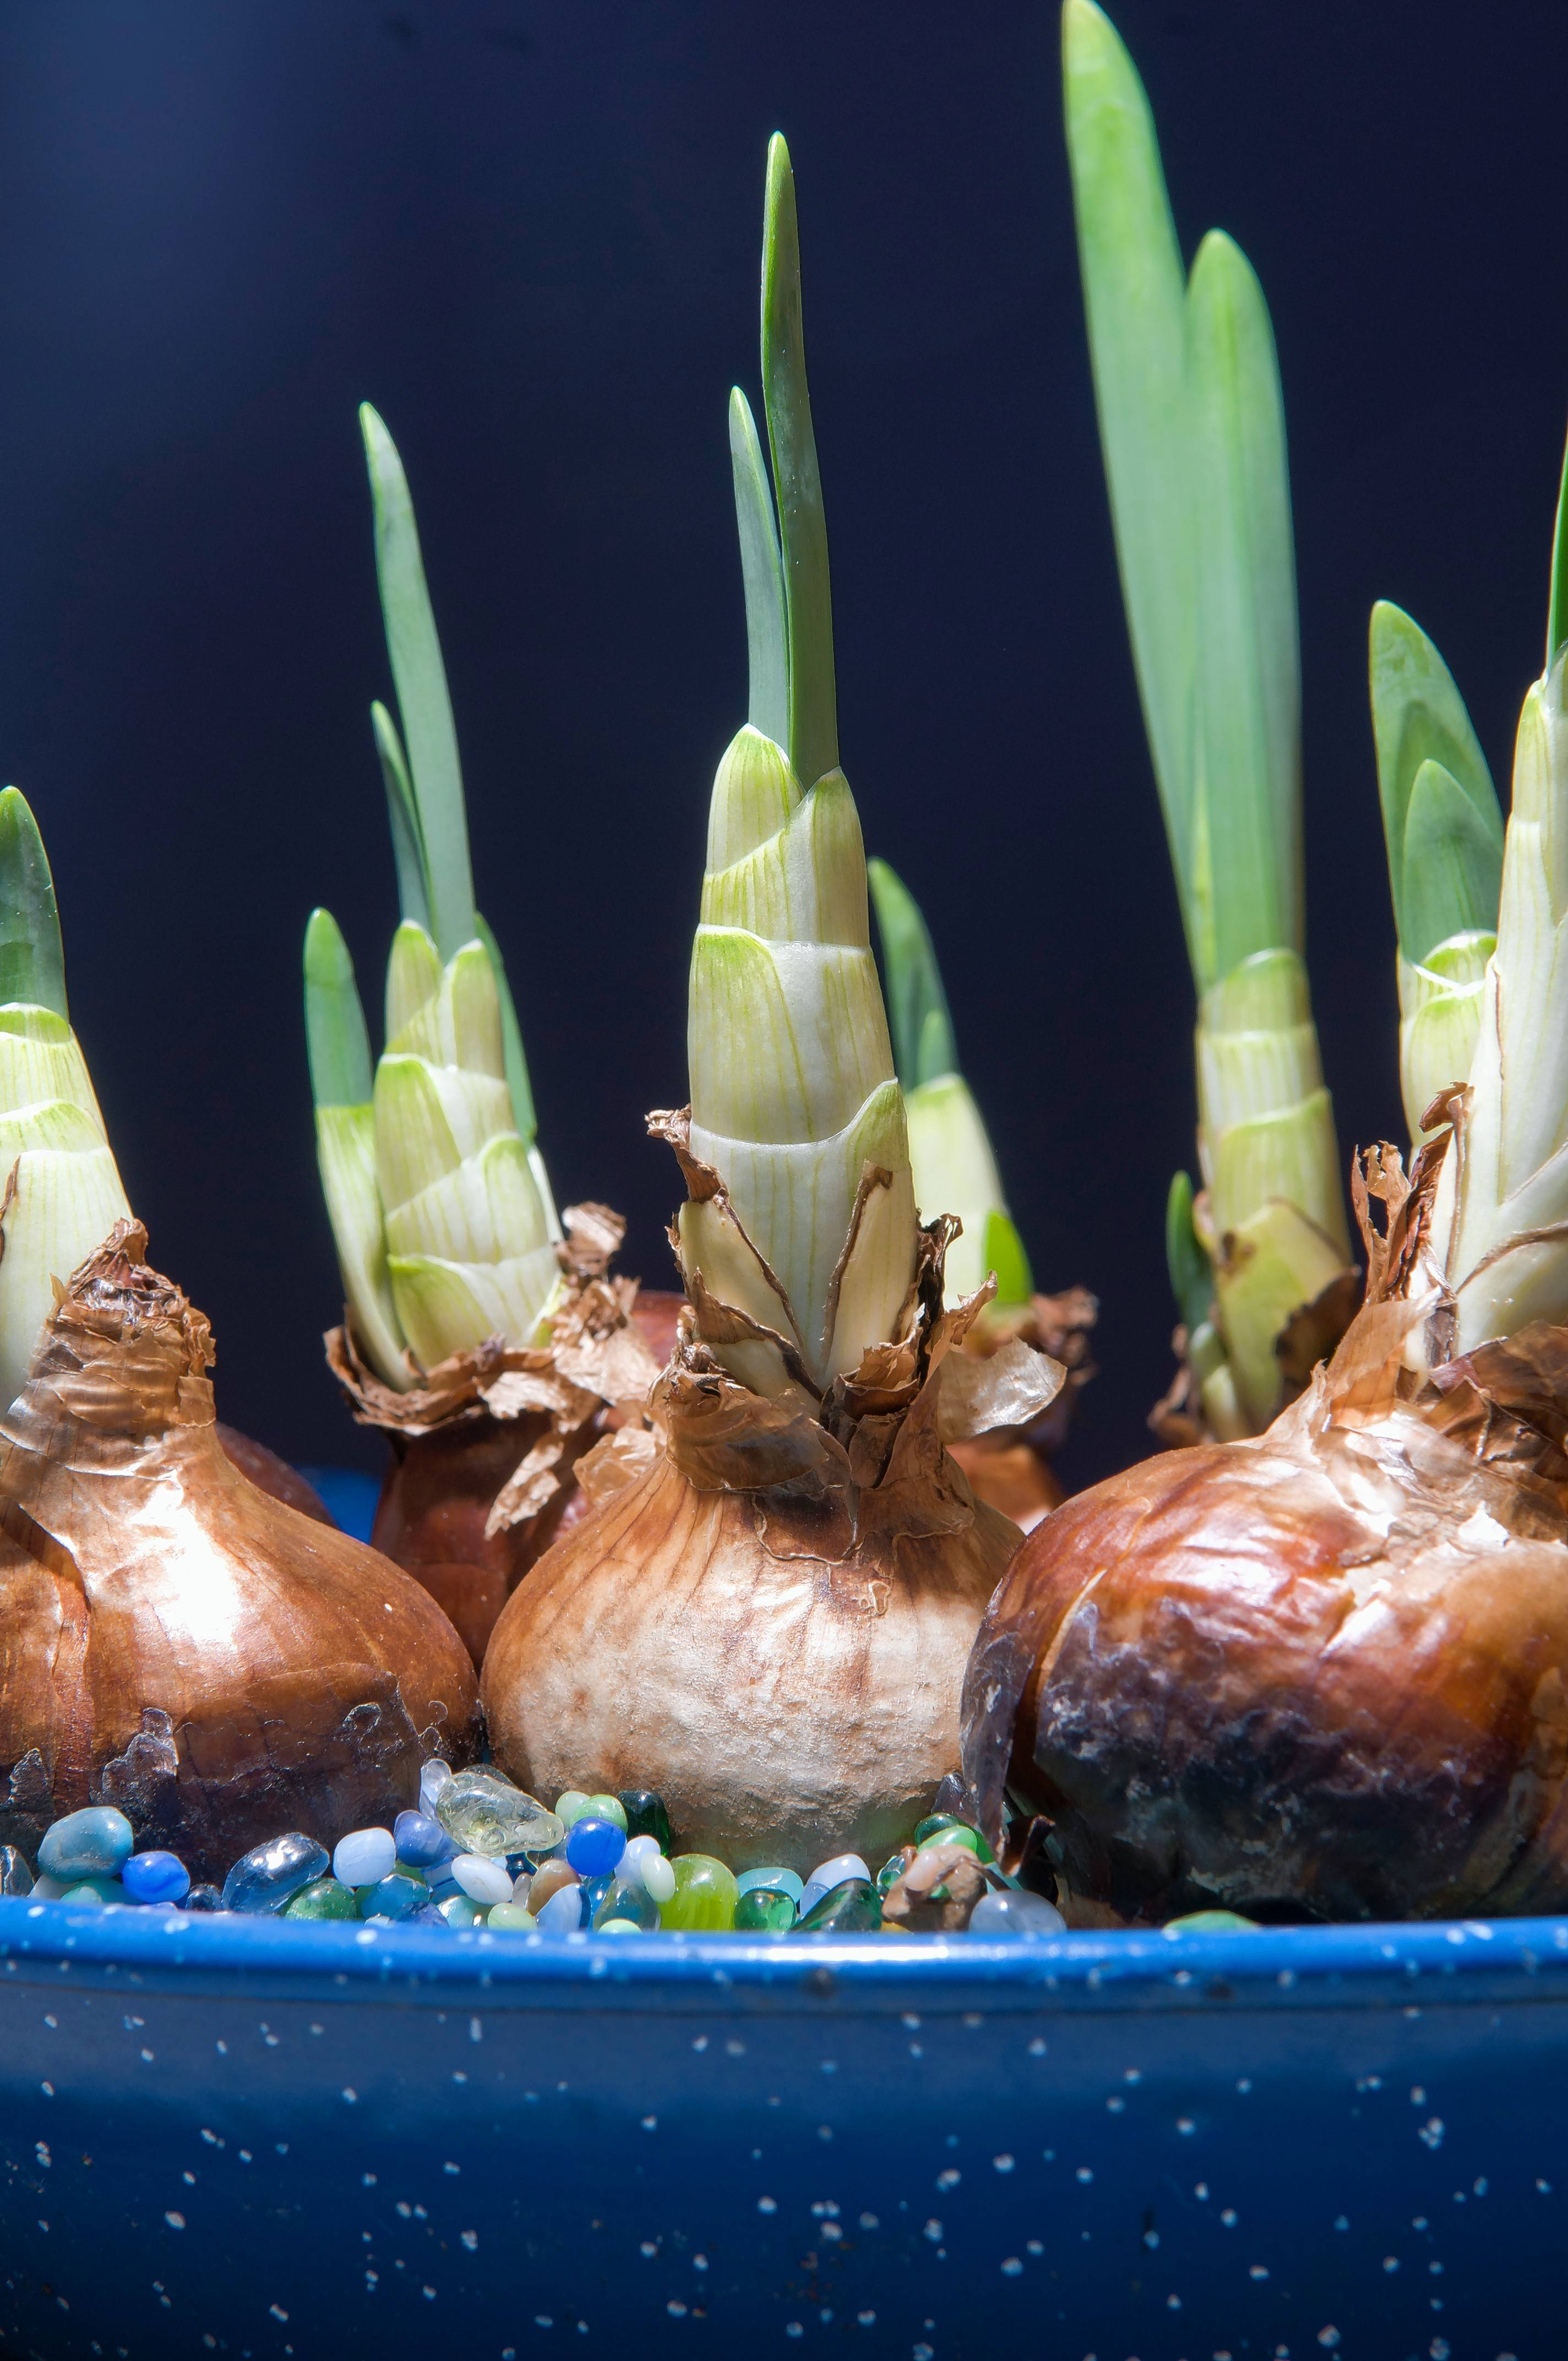 Certain flowering bulbs are excellent for forcing in pots over winter in the greenhouse or home.